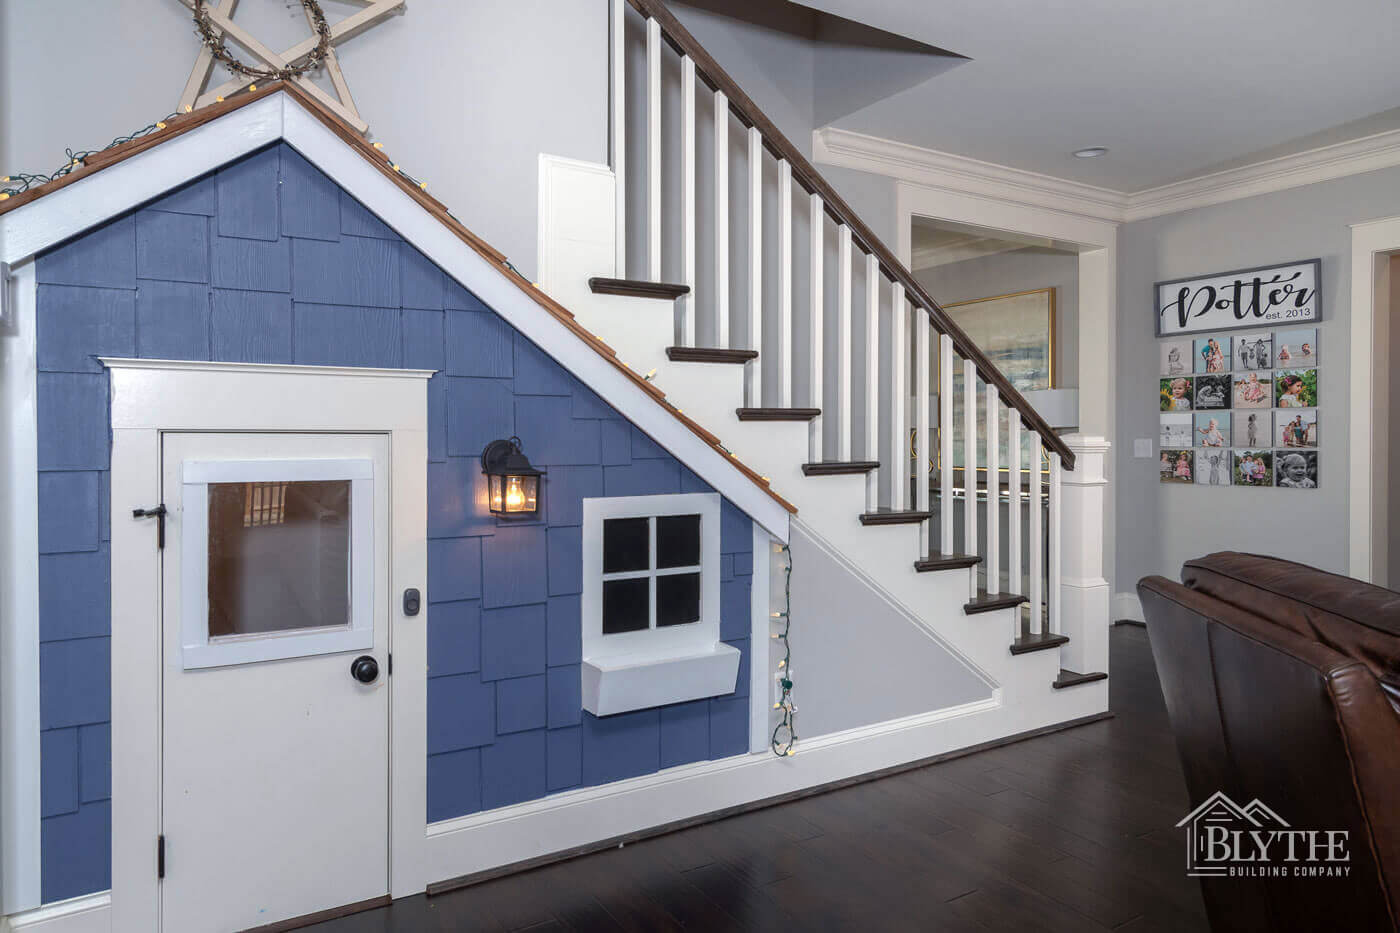 Built in childrens playhouse under stairs home builder SC